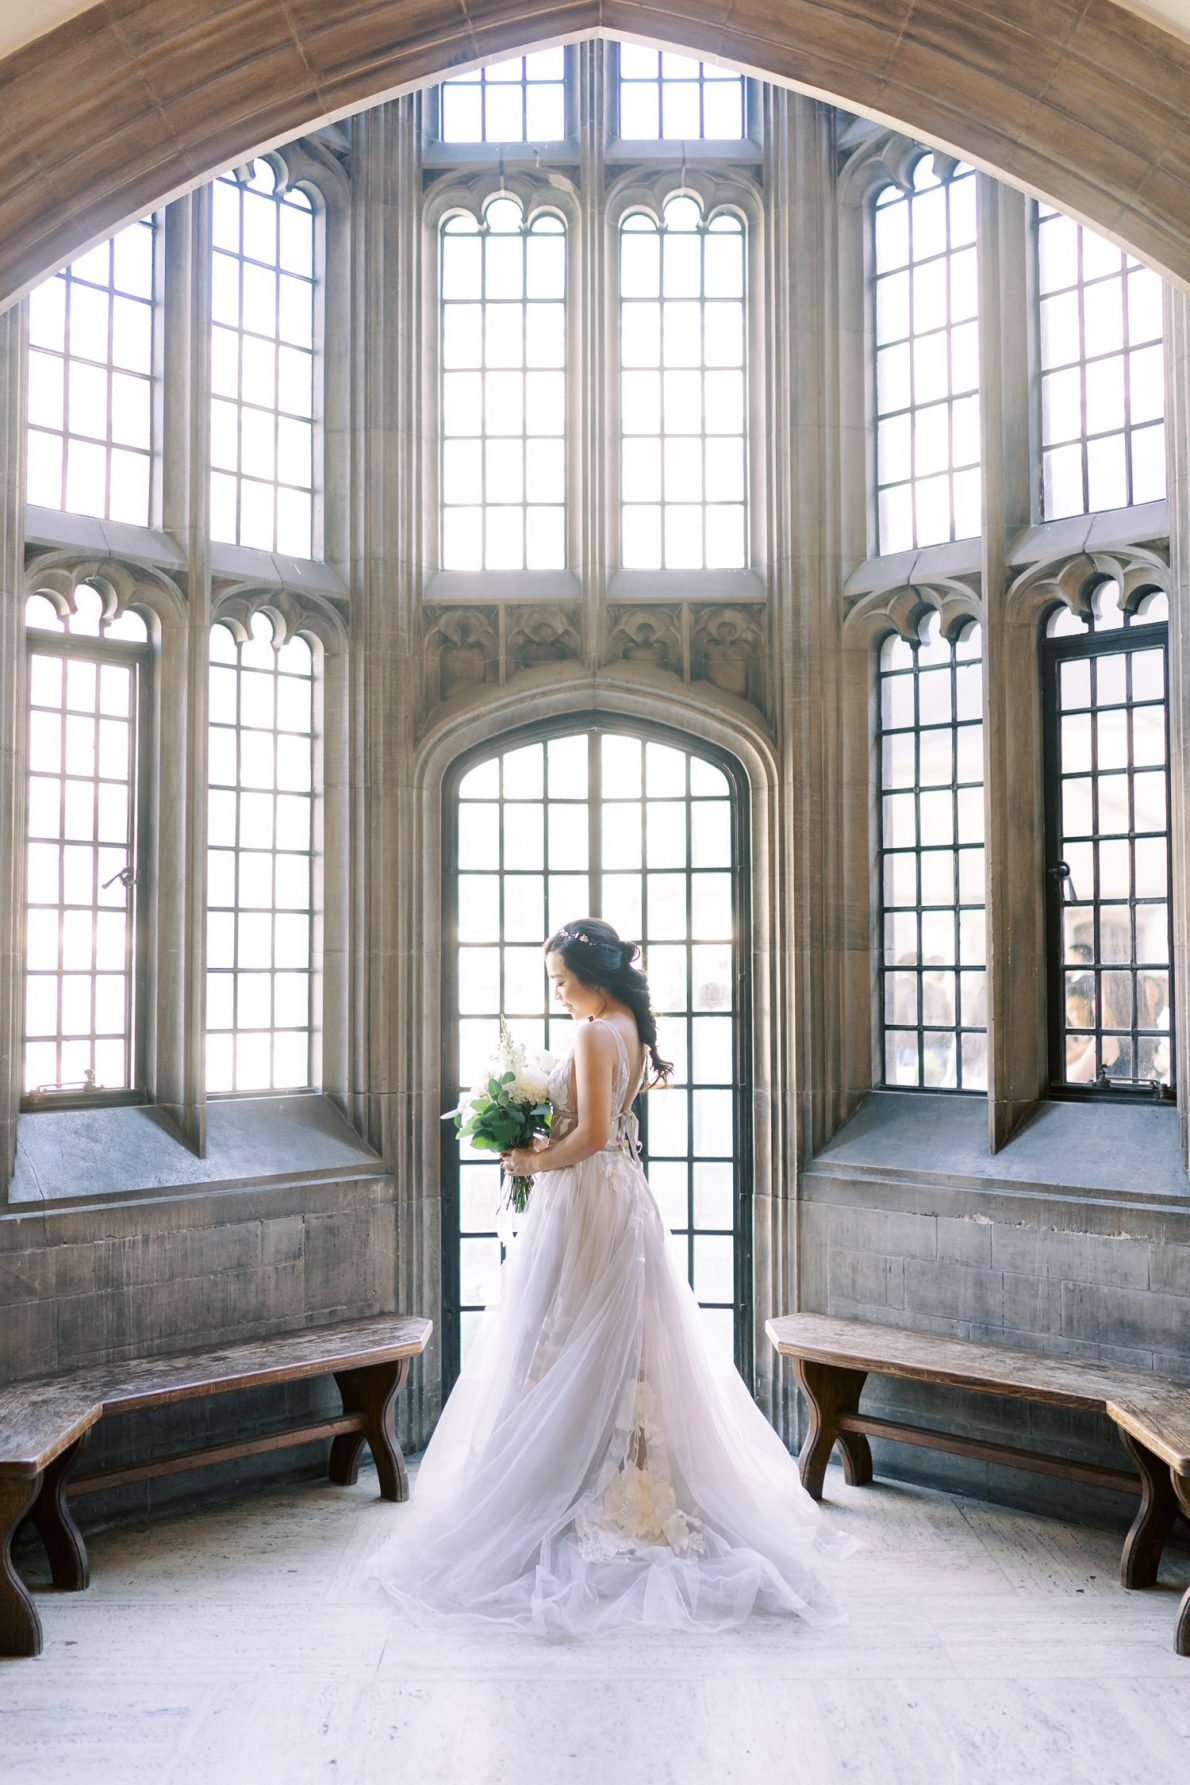 University of Toronto Hart House Bride and Groom Wedding Photos Toronto Wedding Photos